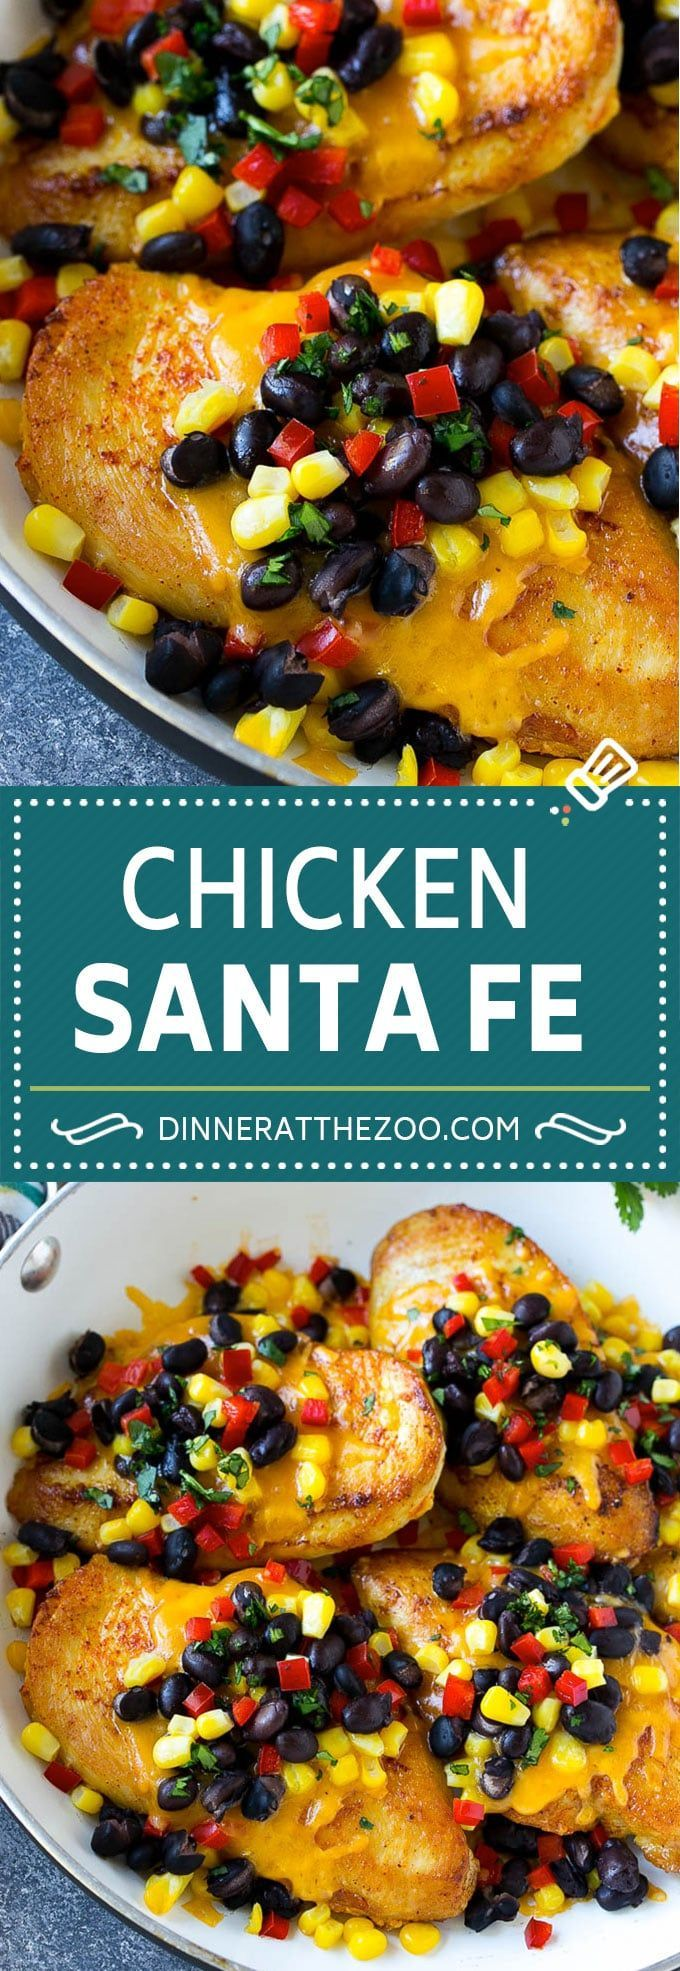 1473 best Recipes to Cook images on Pinterest | Cooking recipes ...